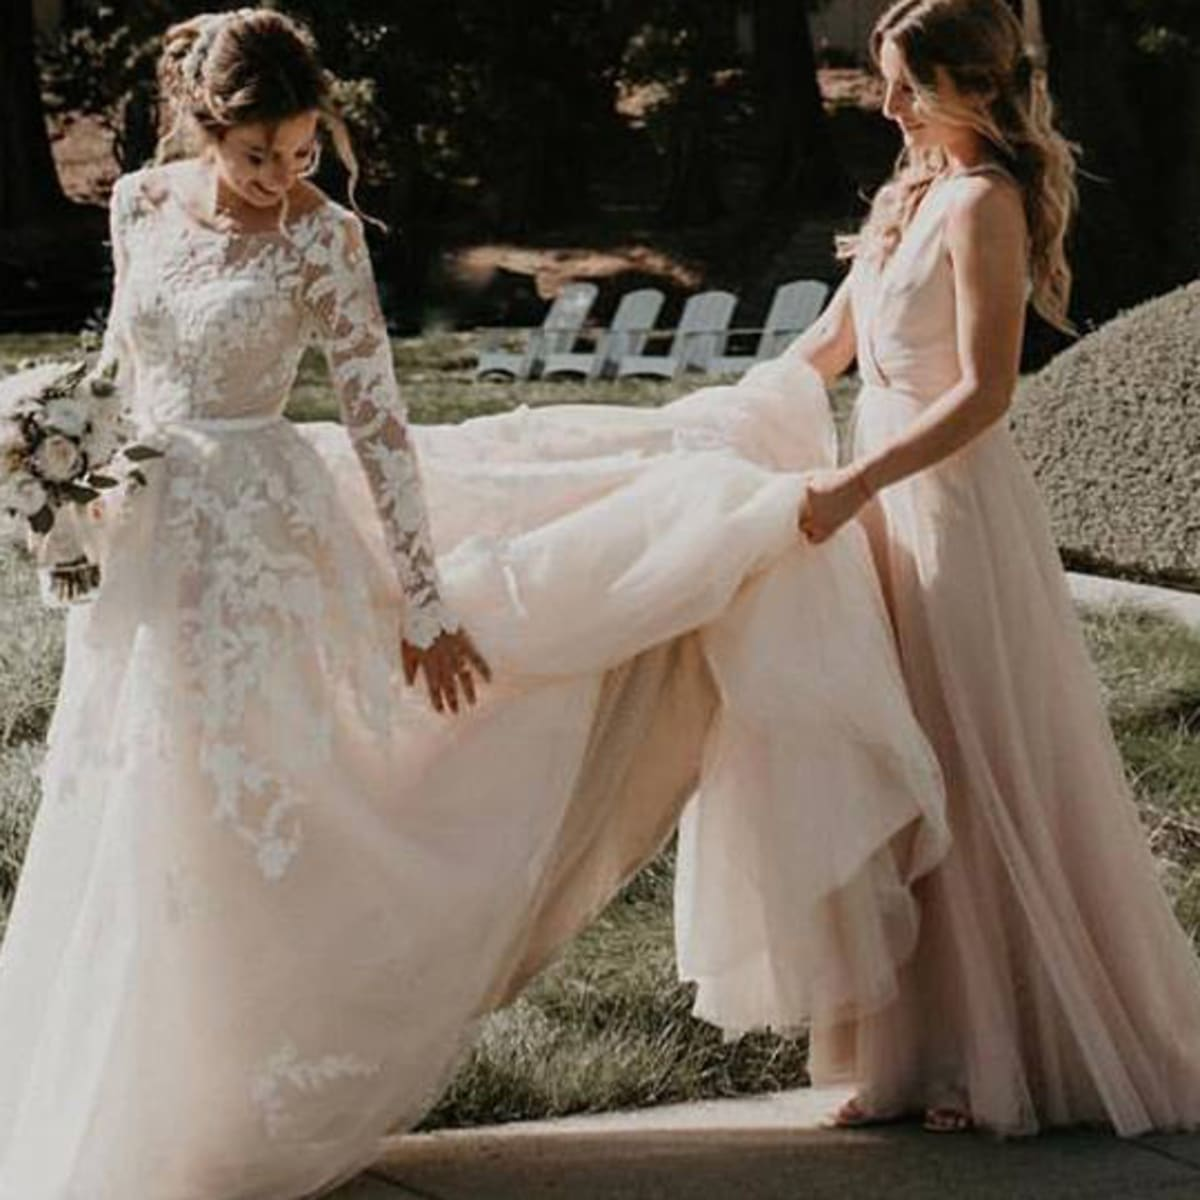 Direct-to-Consumer Bridal Start-Up Anomalie Lets You Custom-Design